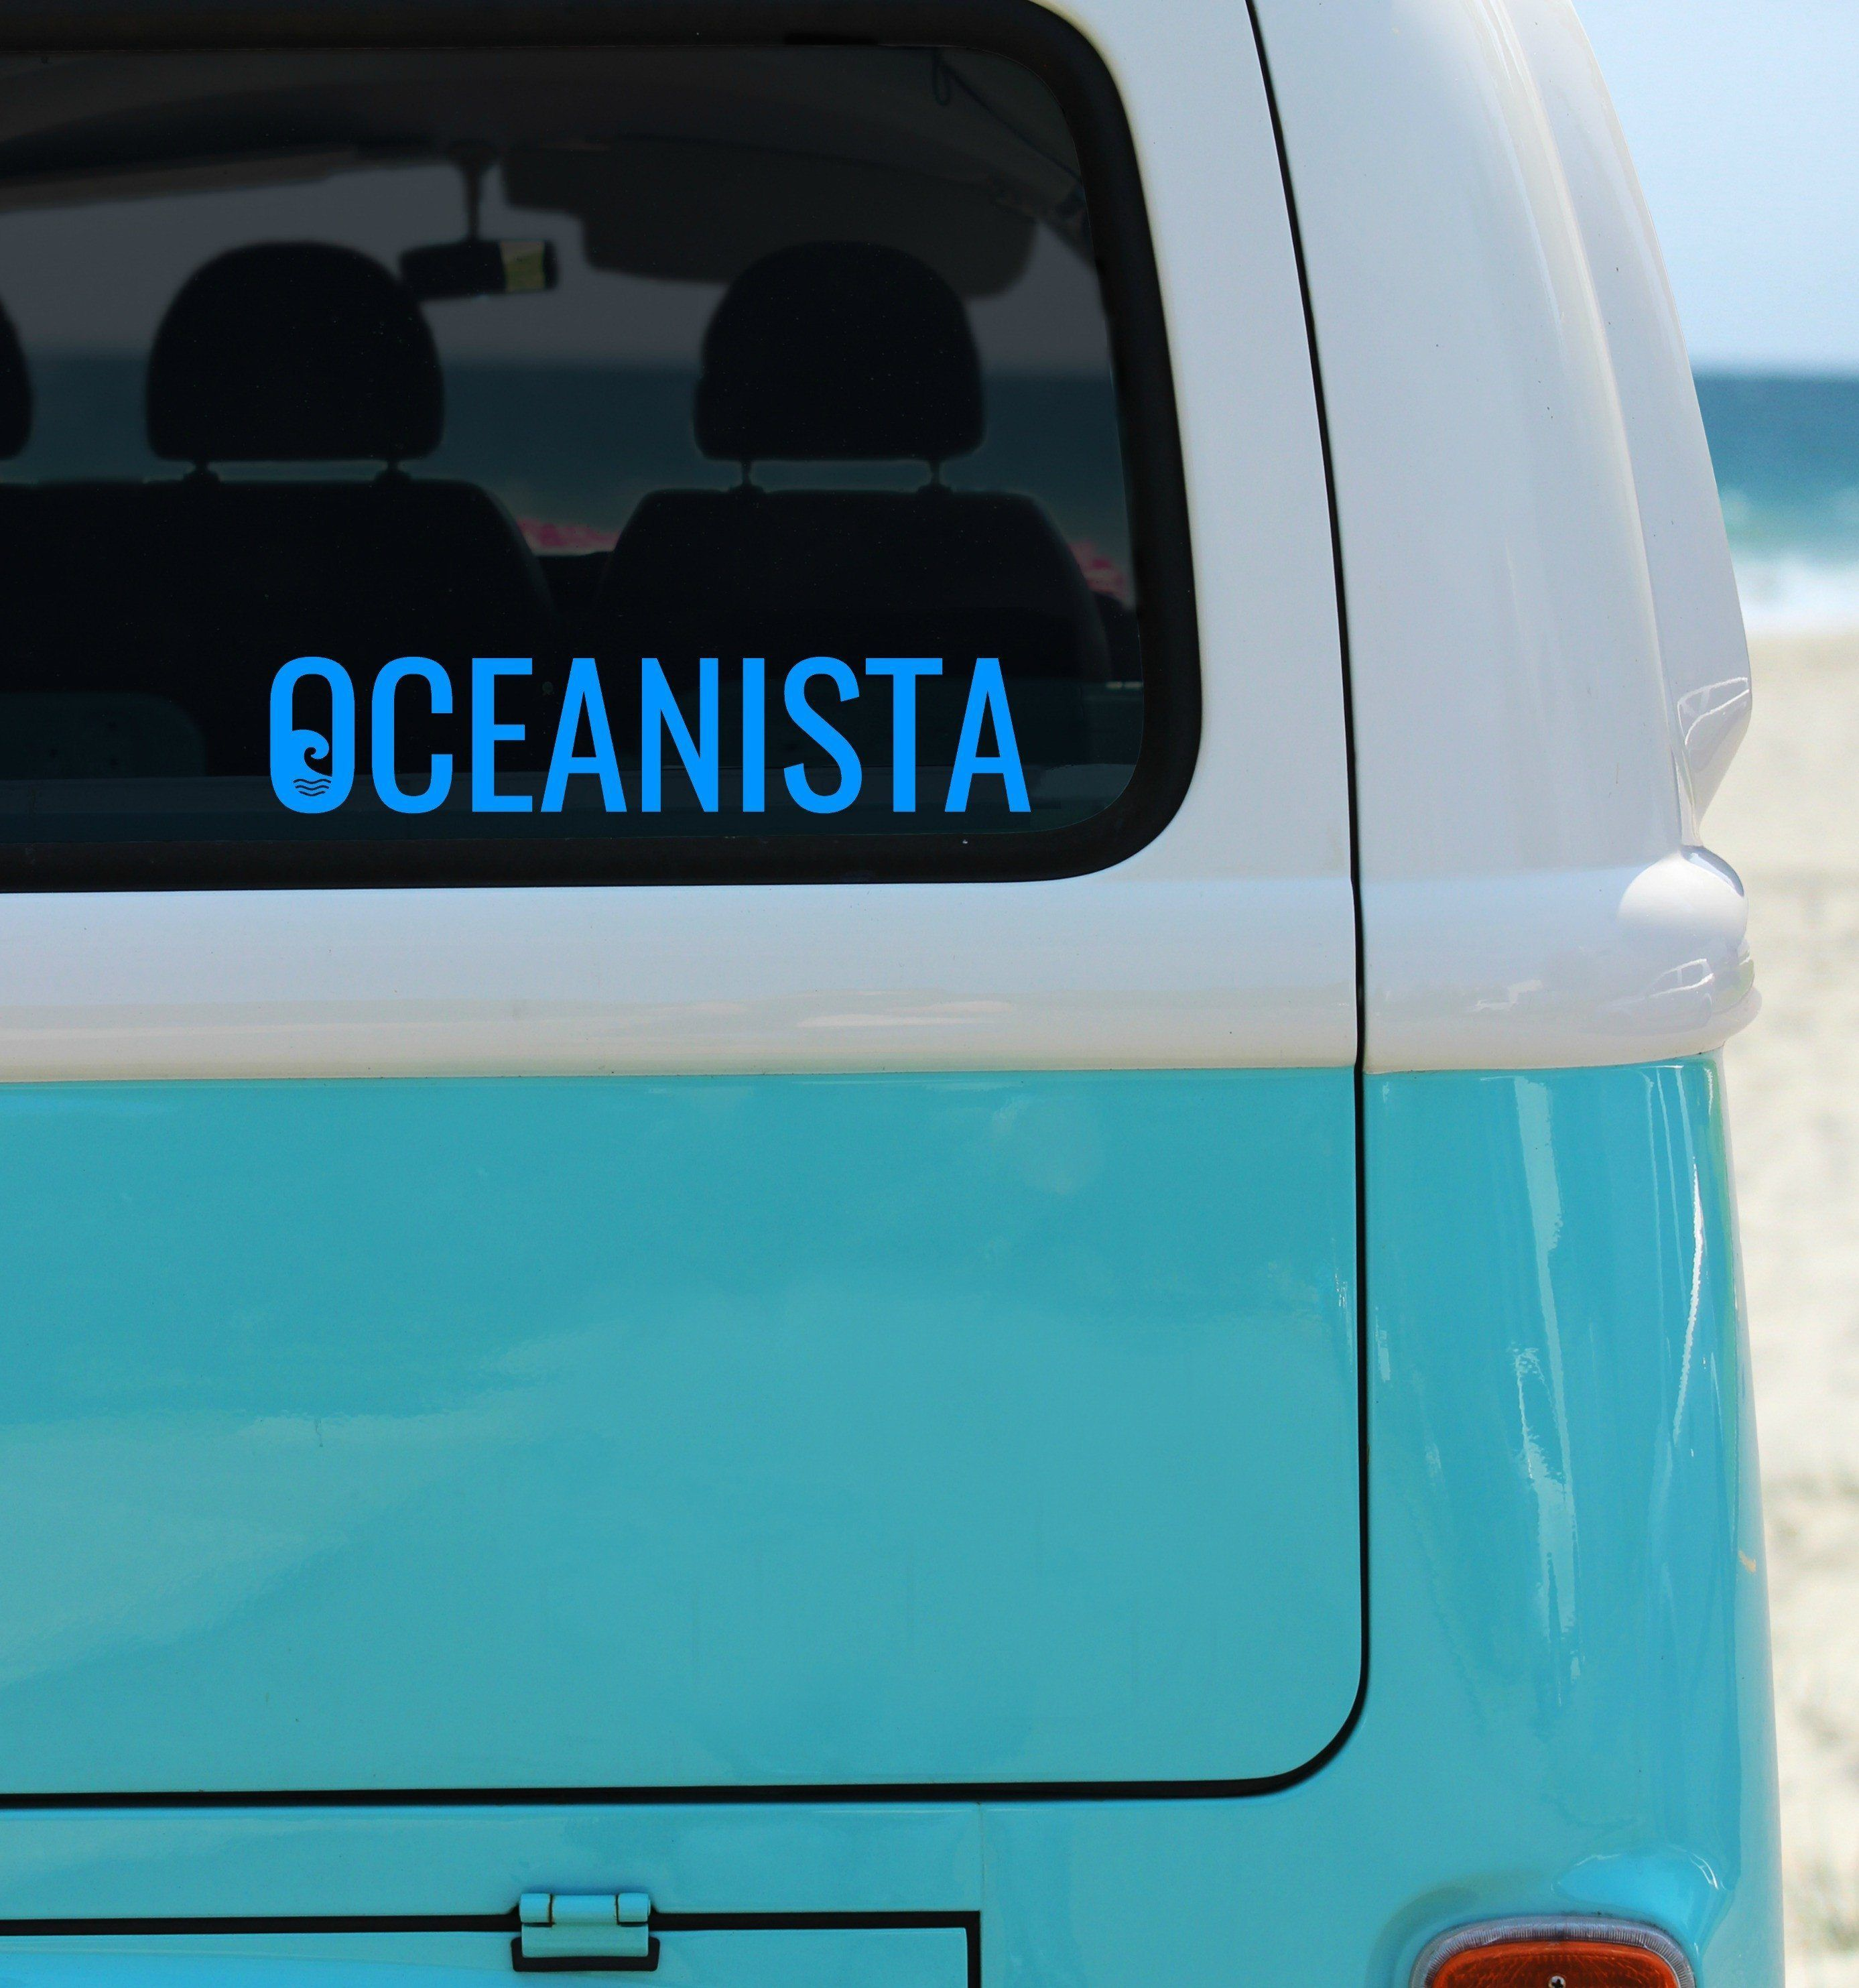 Oceanista Car Decals Car Decal And Products - Vinyl decals for cars windows